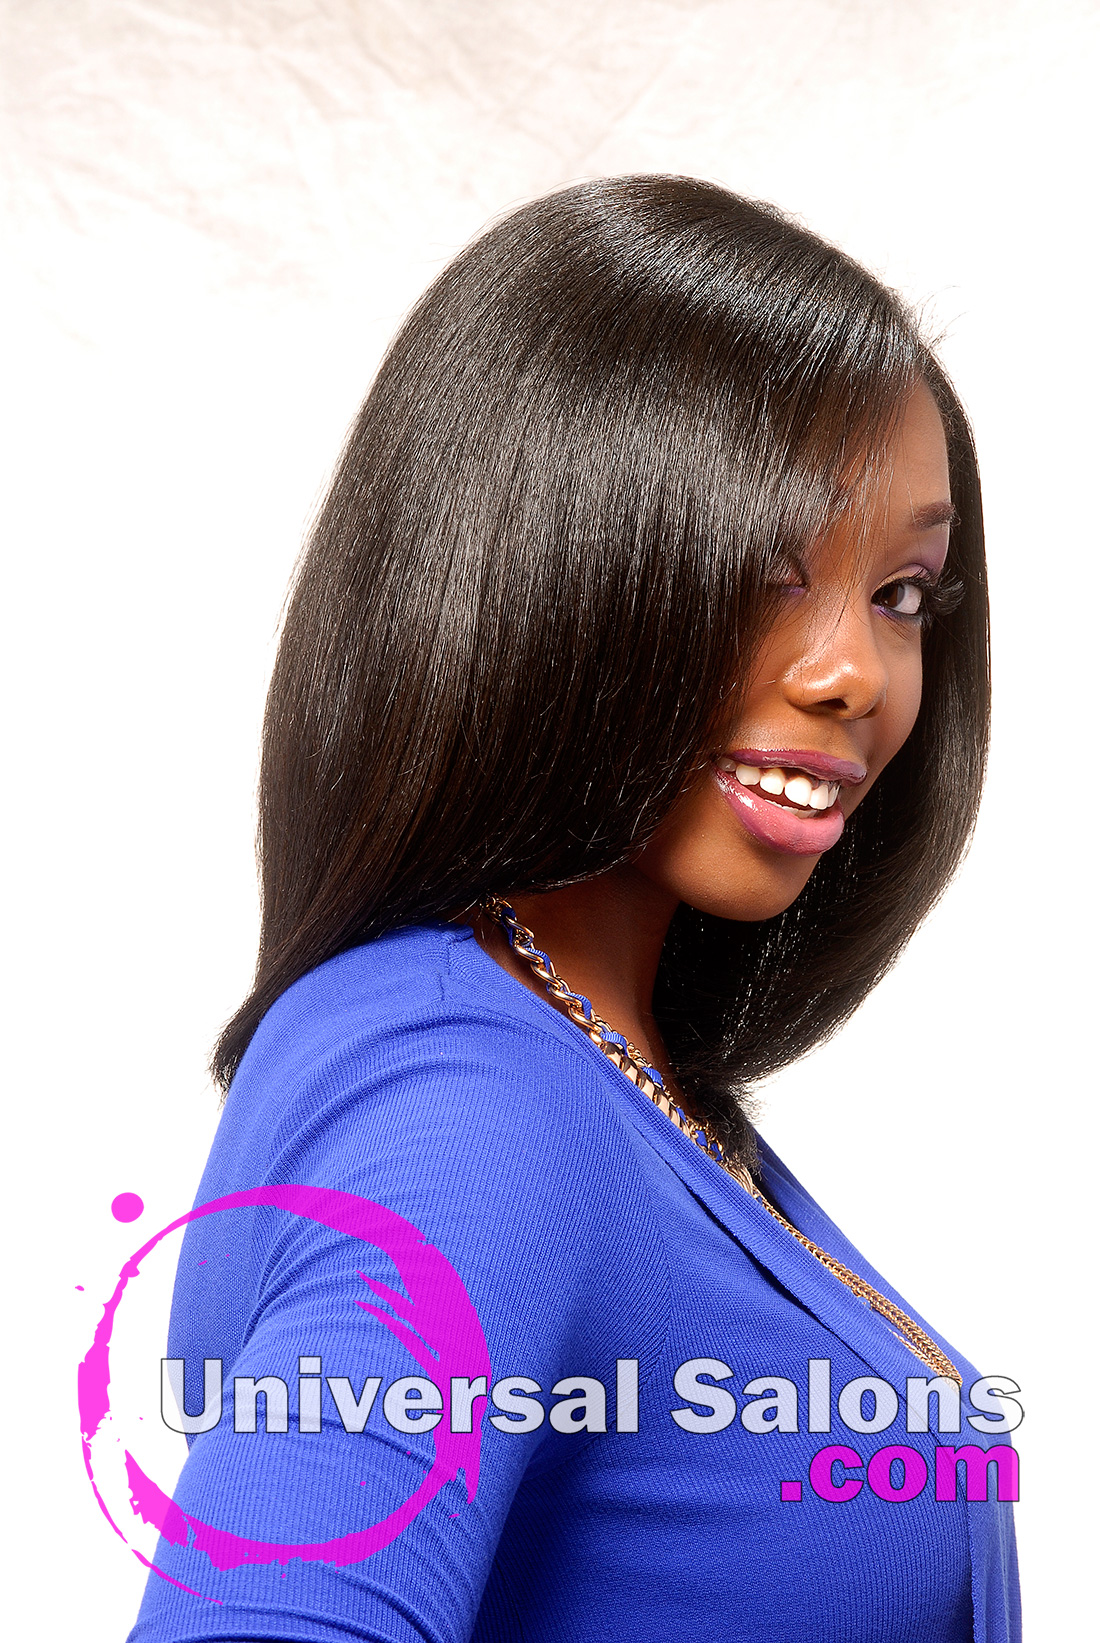 Hair salons in raleigh nc pkhowto for A nu u transitional salon